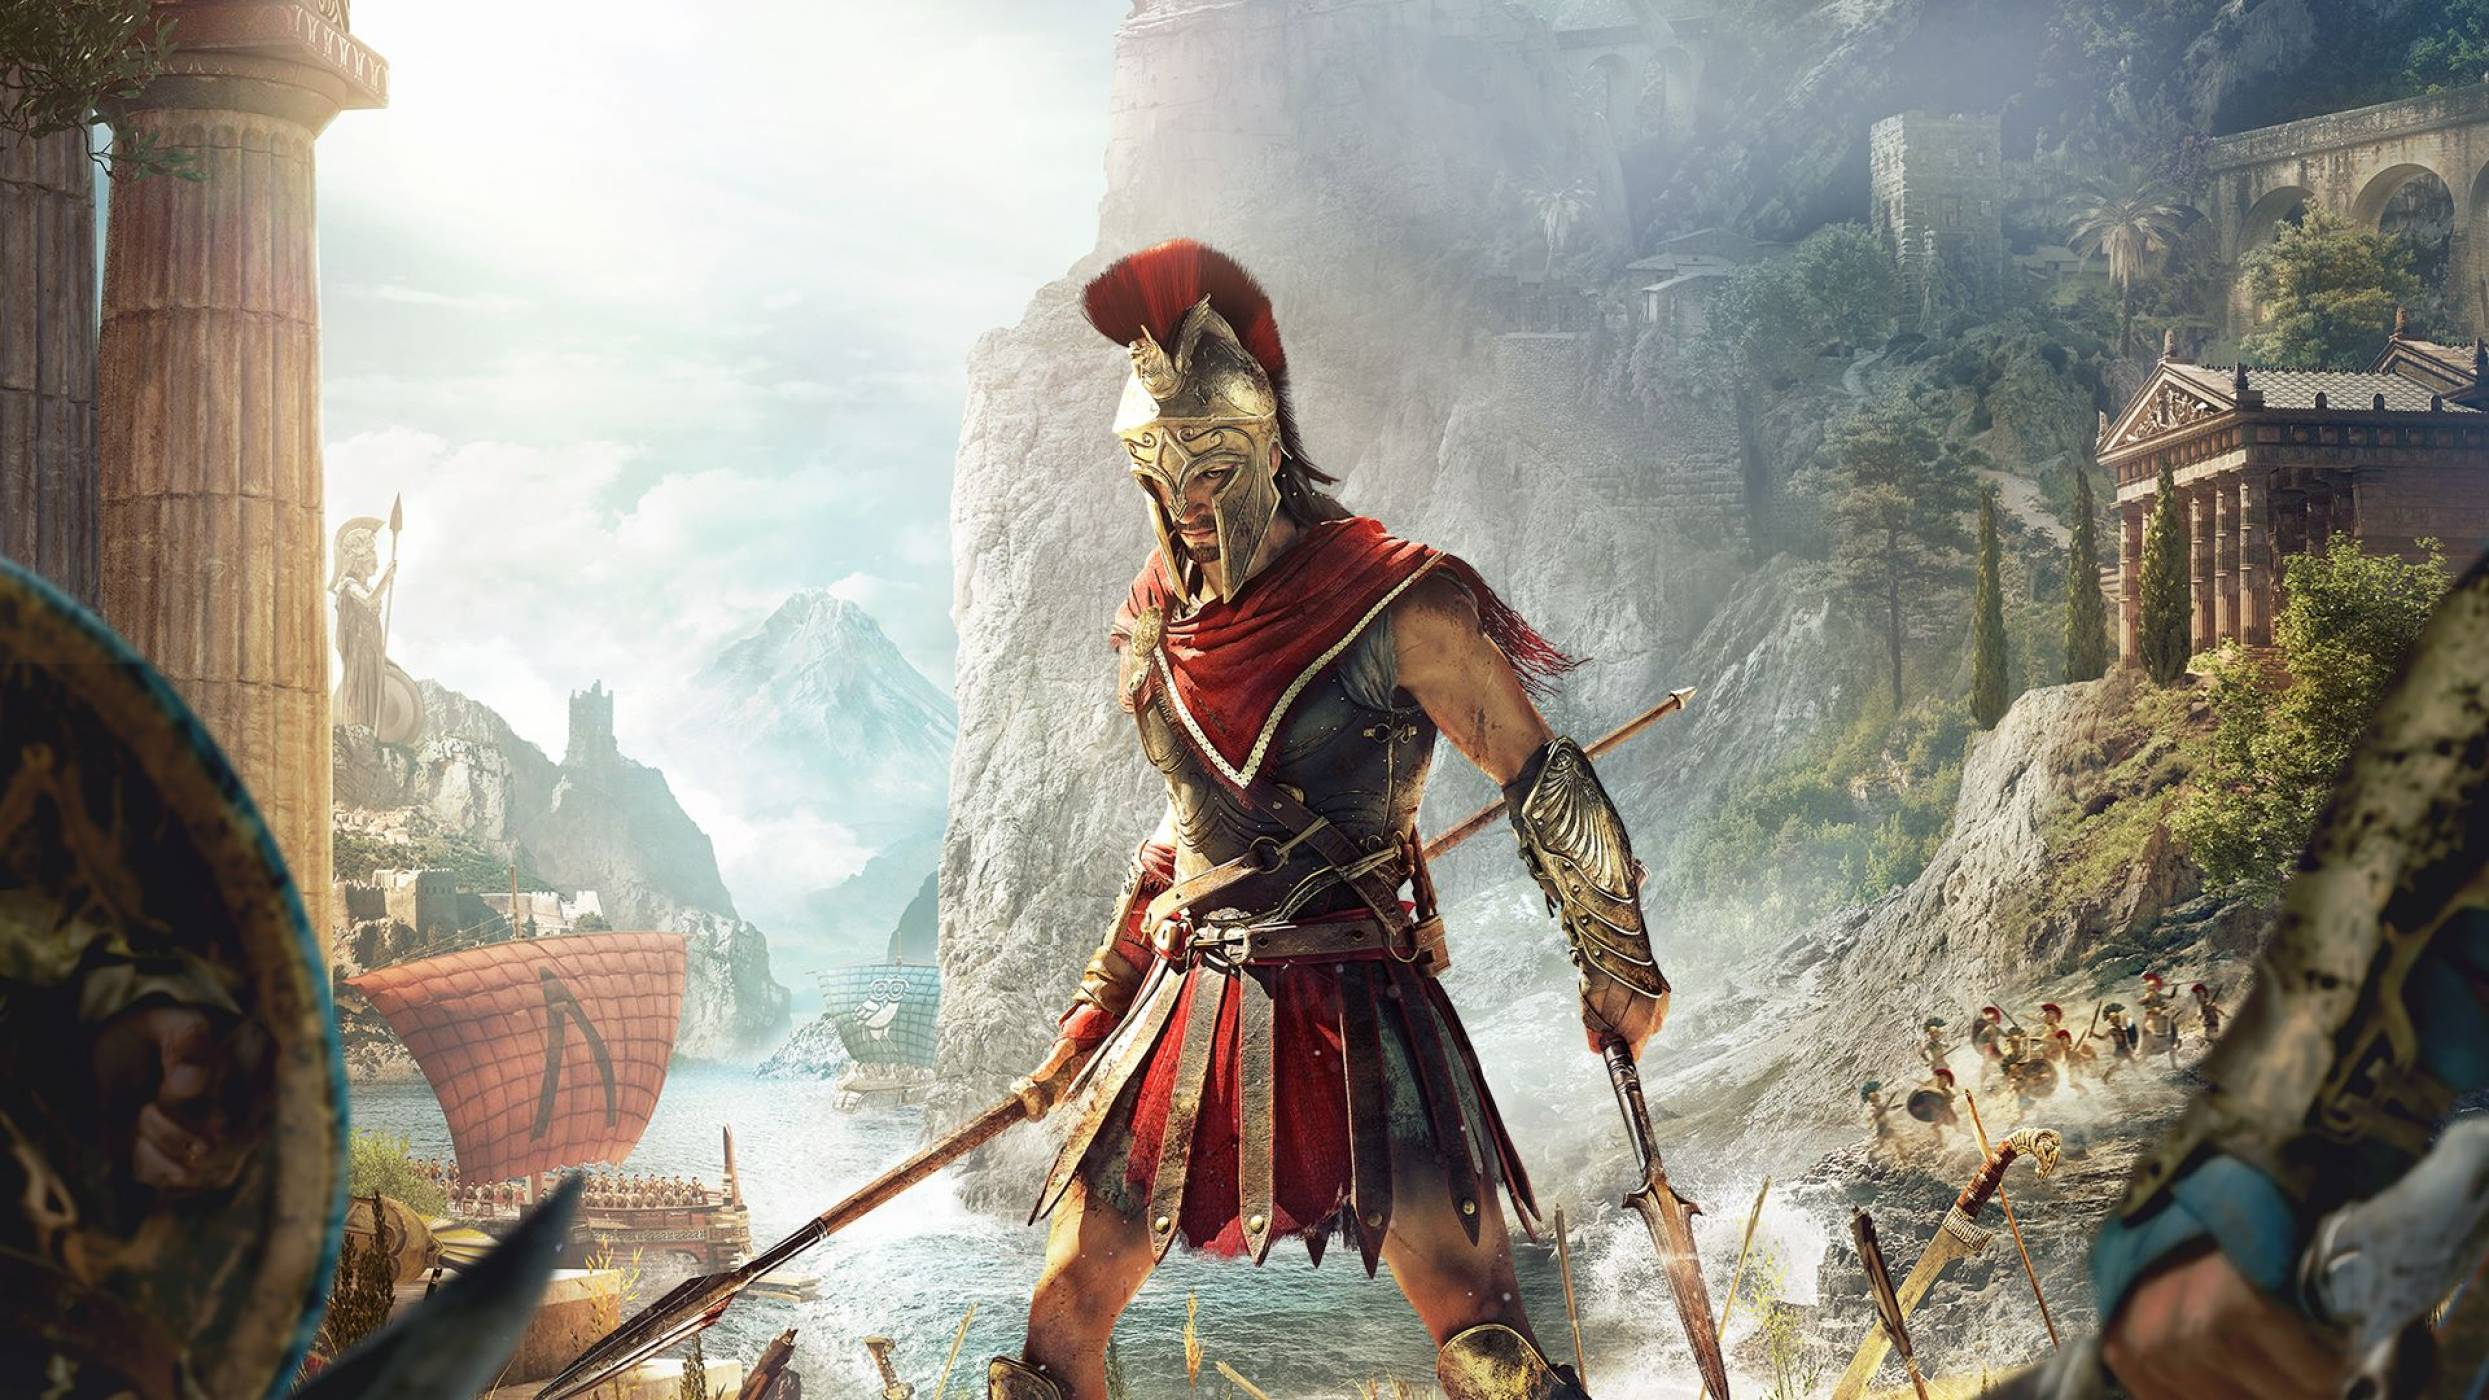 This PlayStation Flash Sale is the perfect opportunity to get Assassin's Creed Odyssey and all its DLC